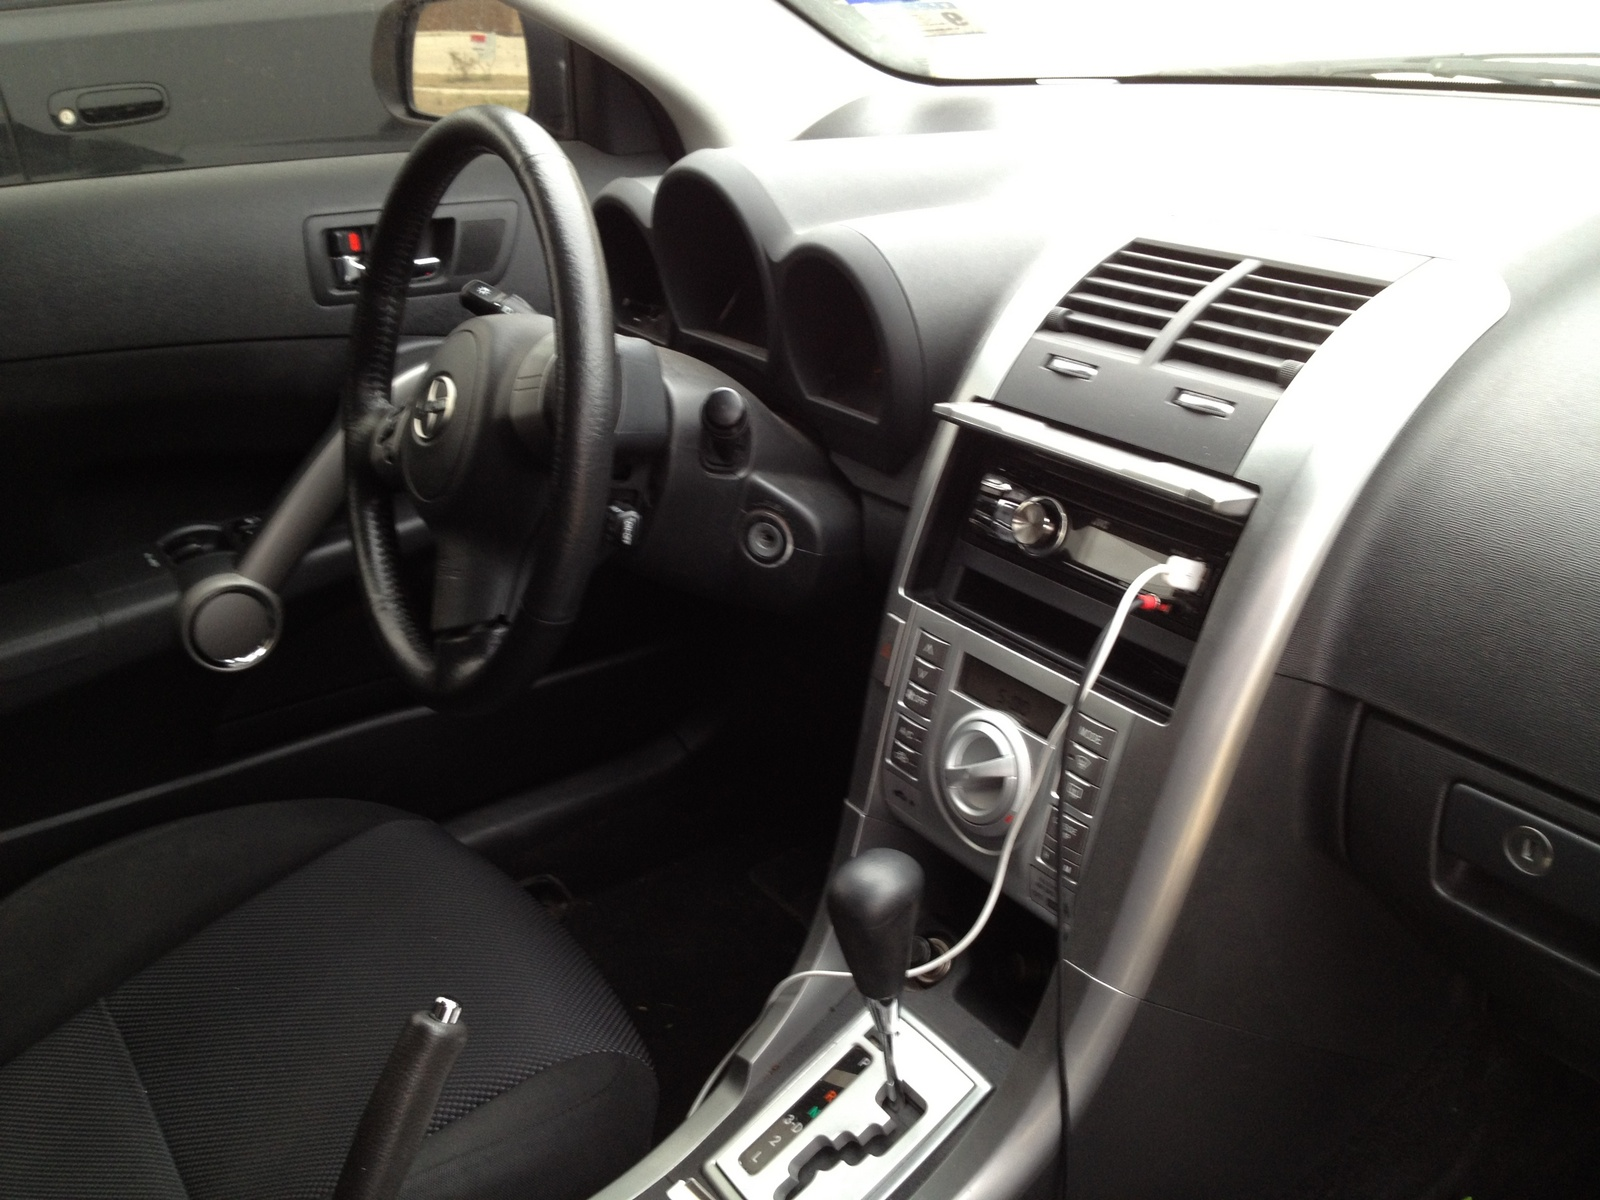 2008 Scion tC Interior